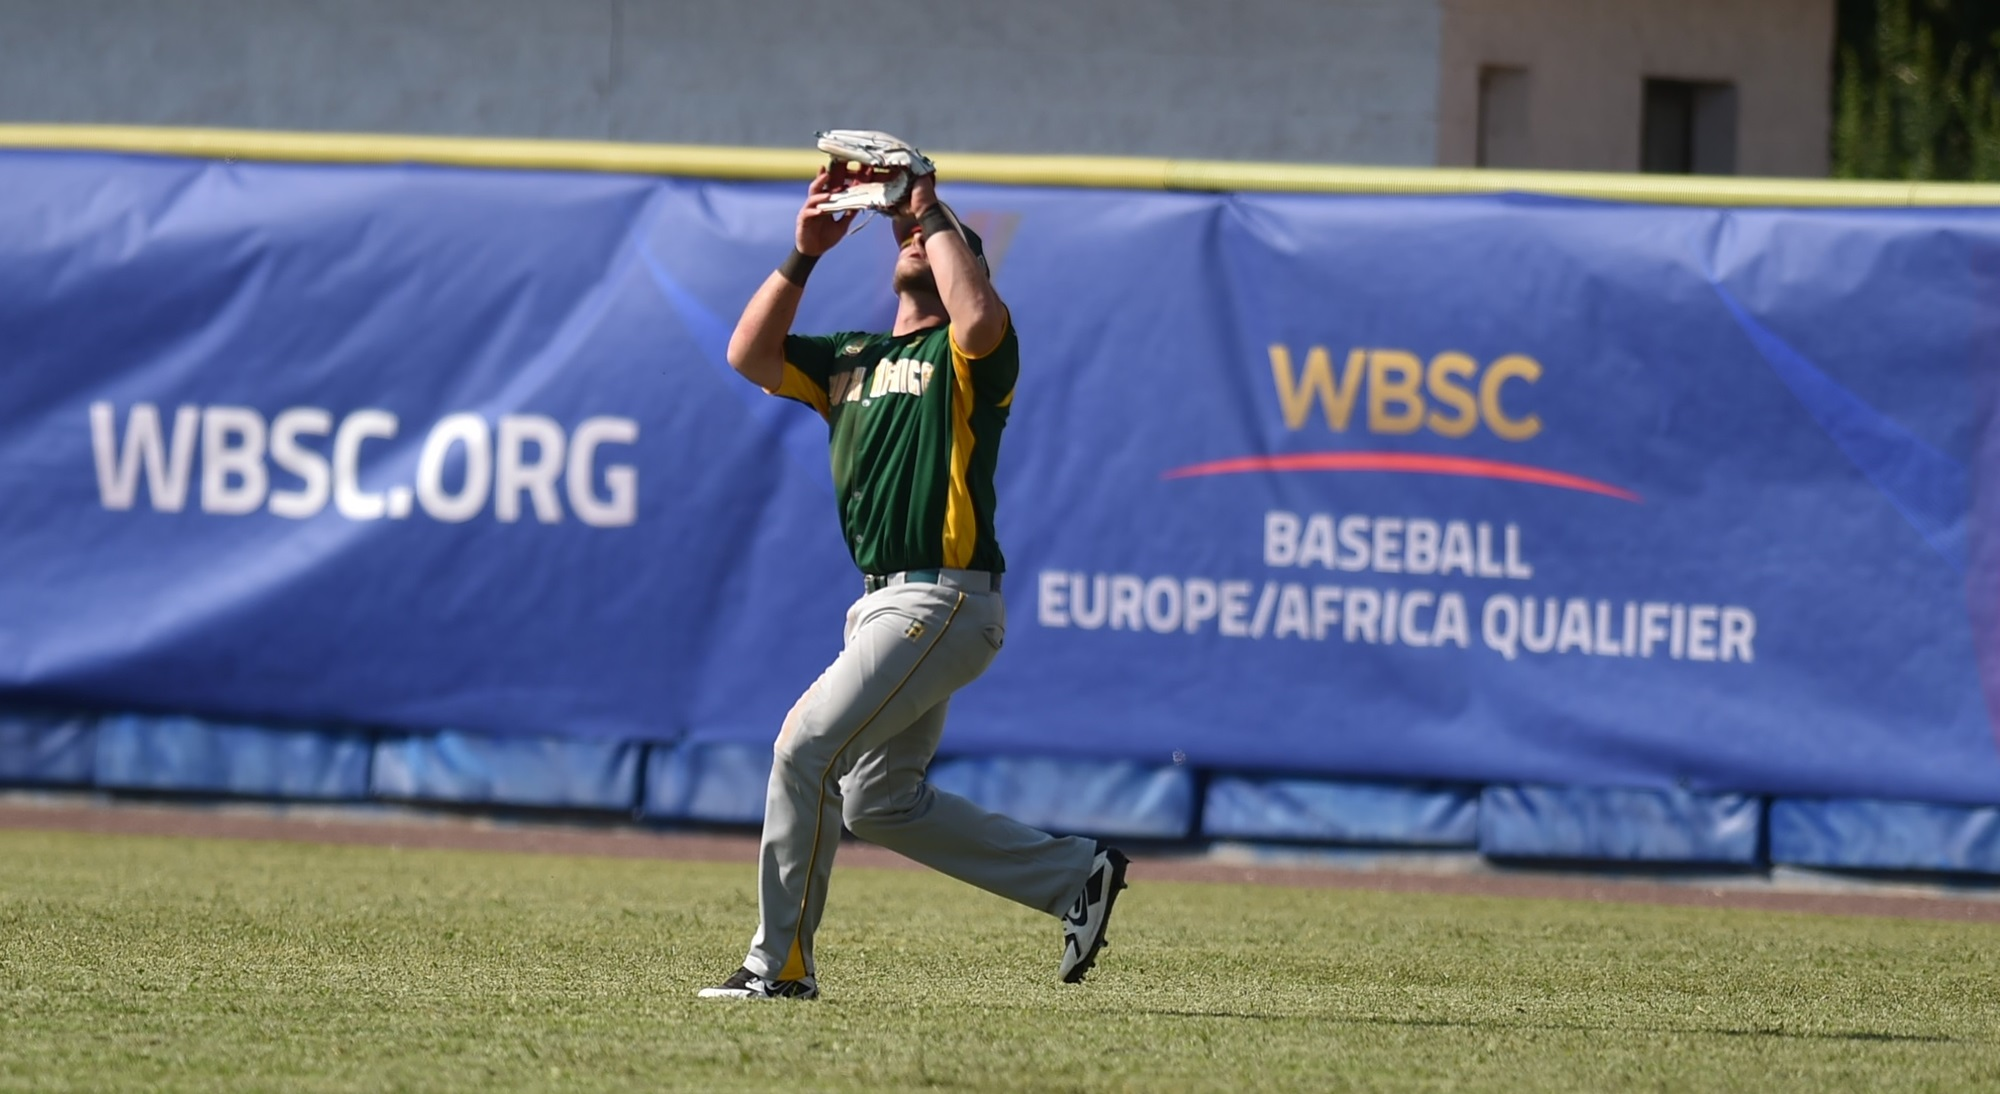 The Czechs put two runners in scoring position advancing with two outs on a fly ball in the bottom of the fourth